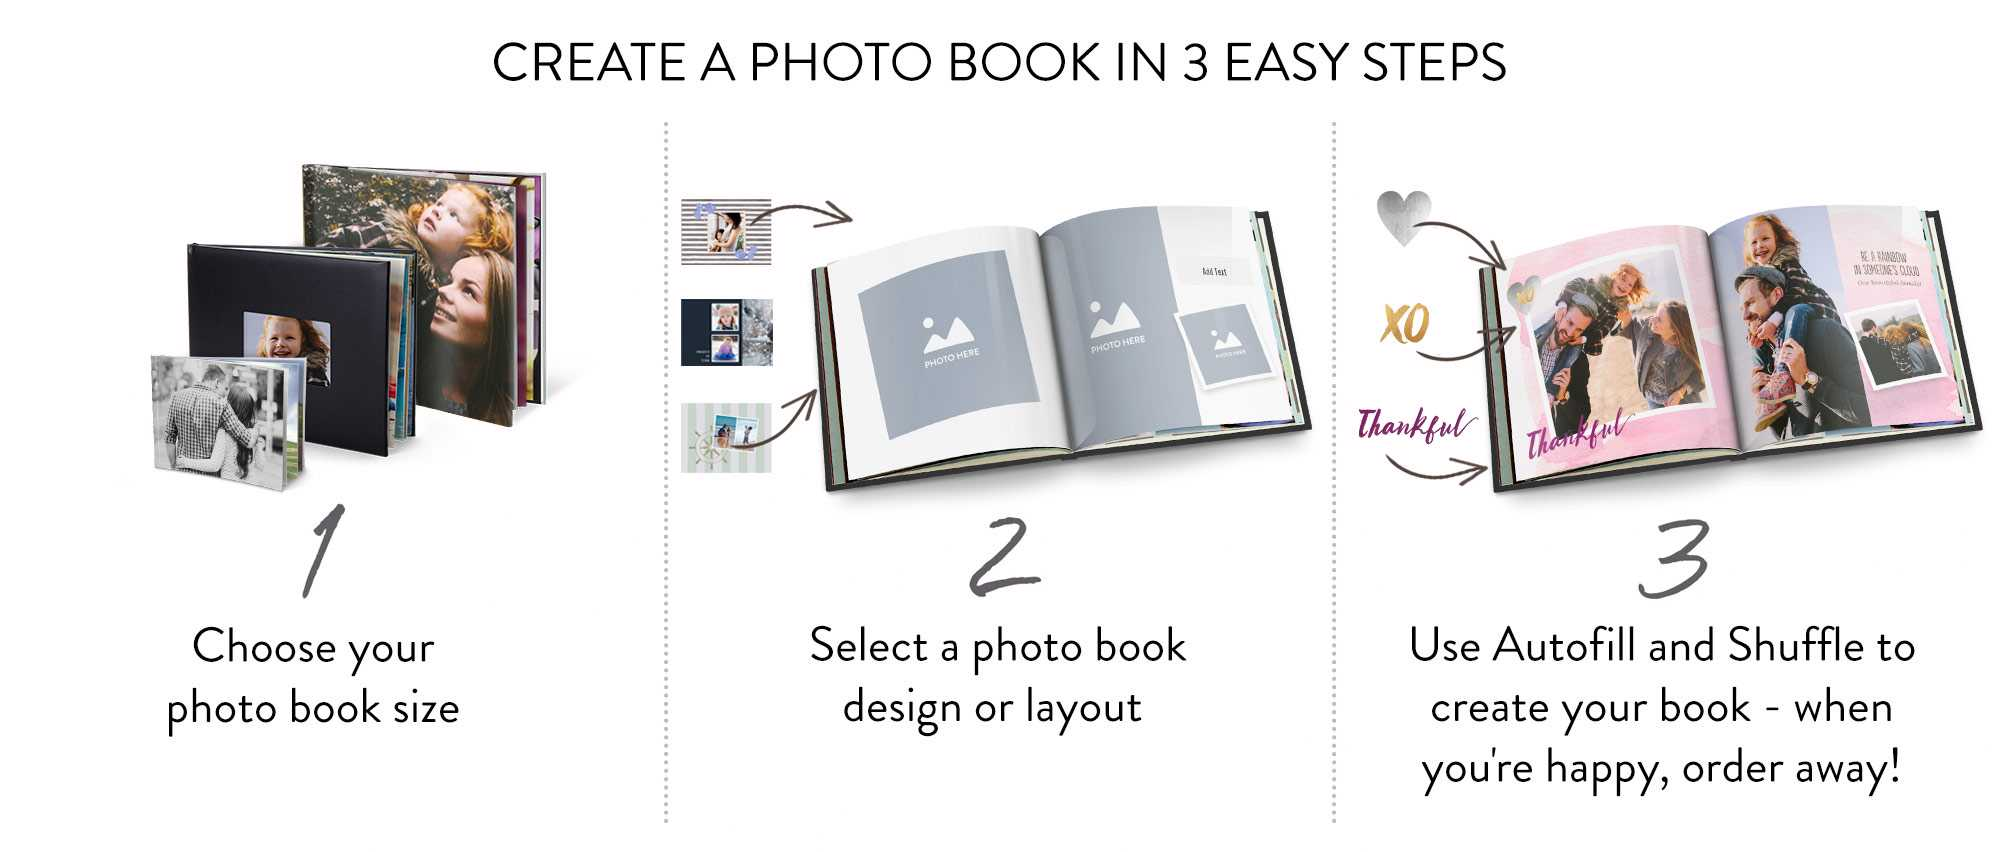 Create a book from photos M: The 100 Startup: Reinvent the Way You